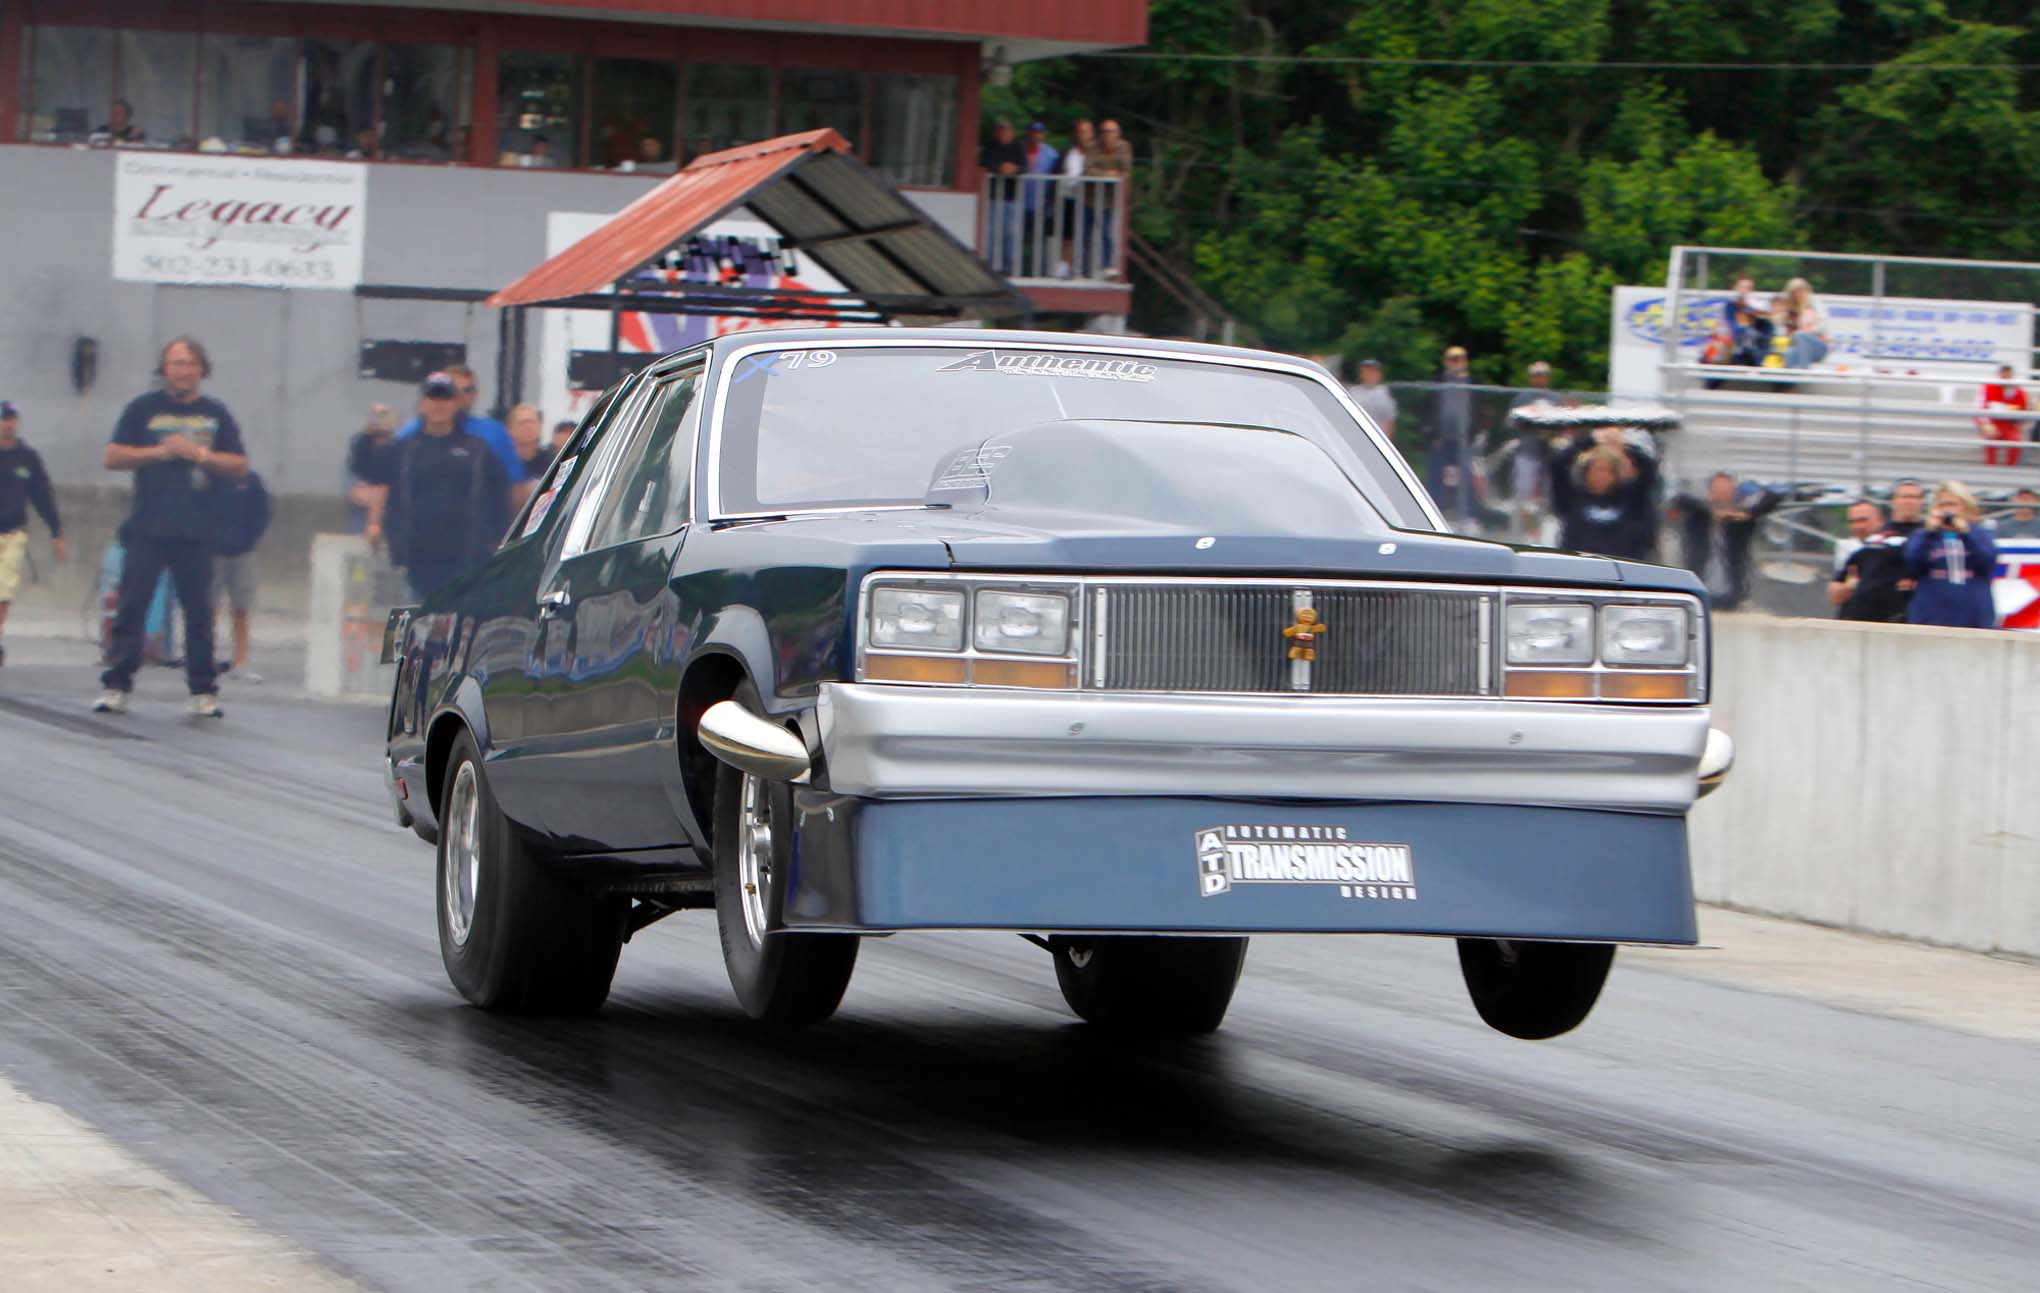 Jimmy Plimpton recently ran a personal best 4.55 at 154 mph in his X275-class Fairmont.